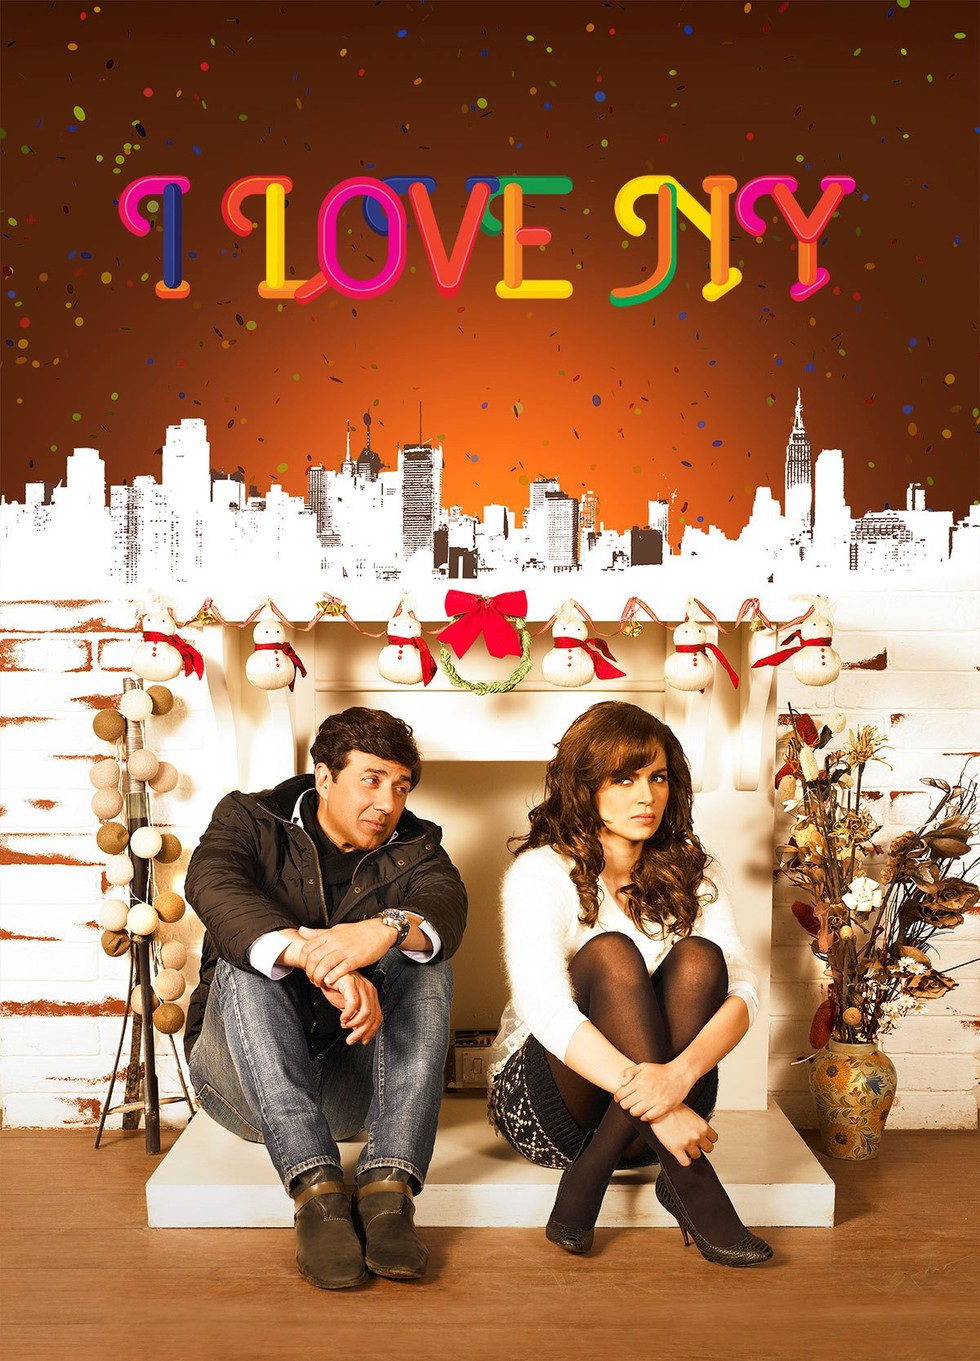 I Love New Year - Movie Poster #3 (Large)